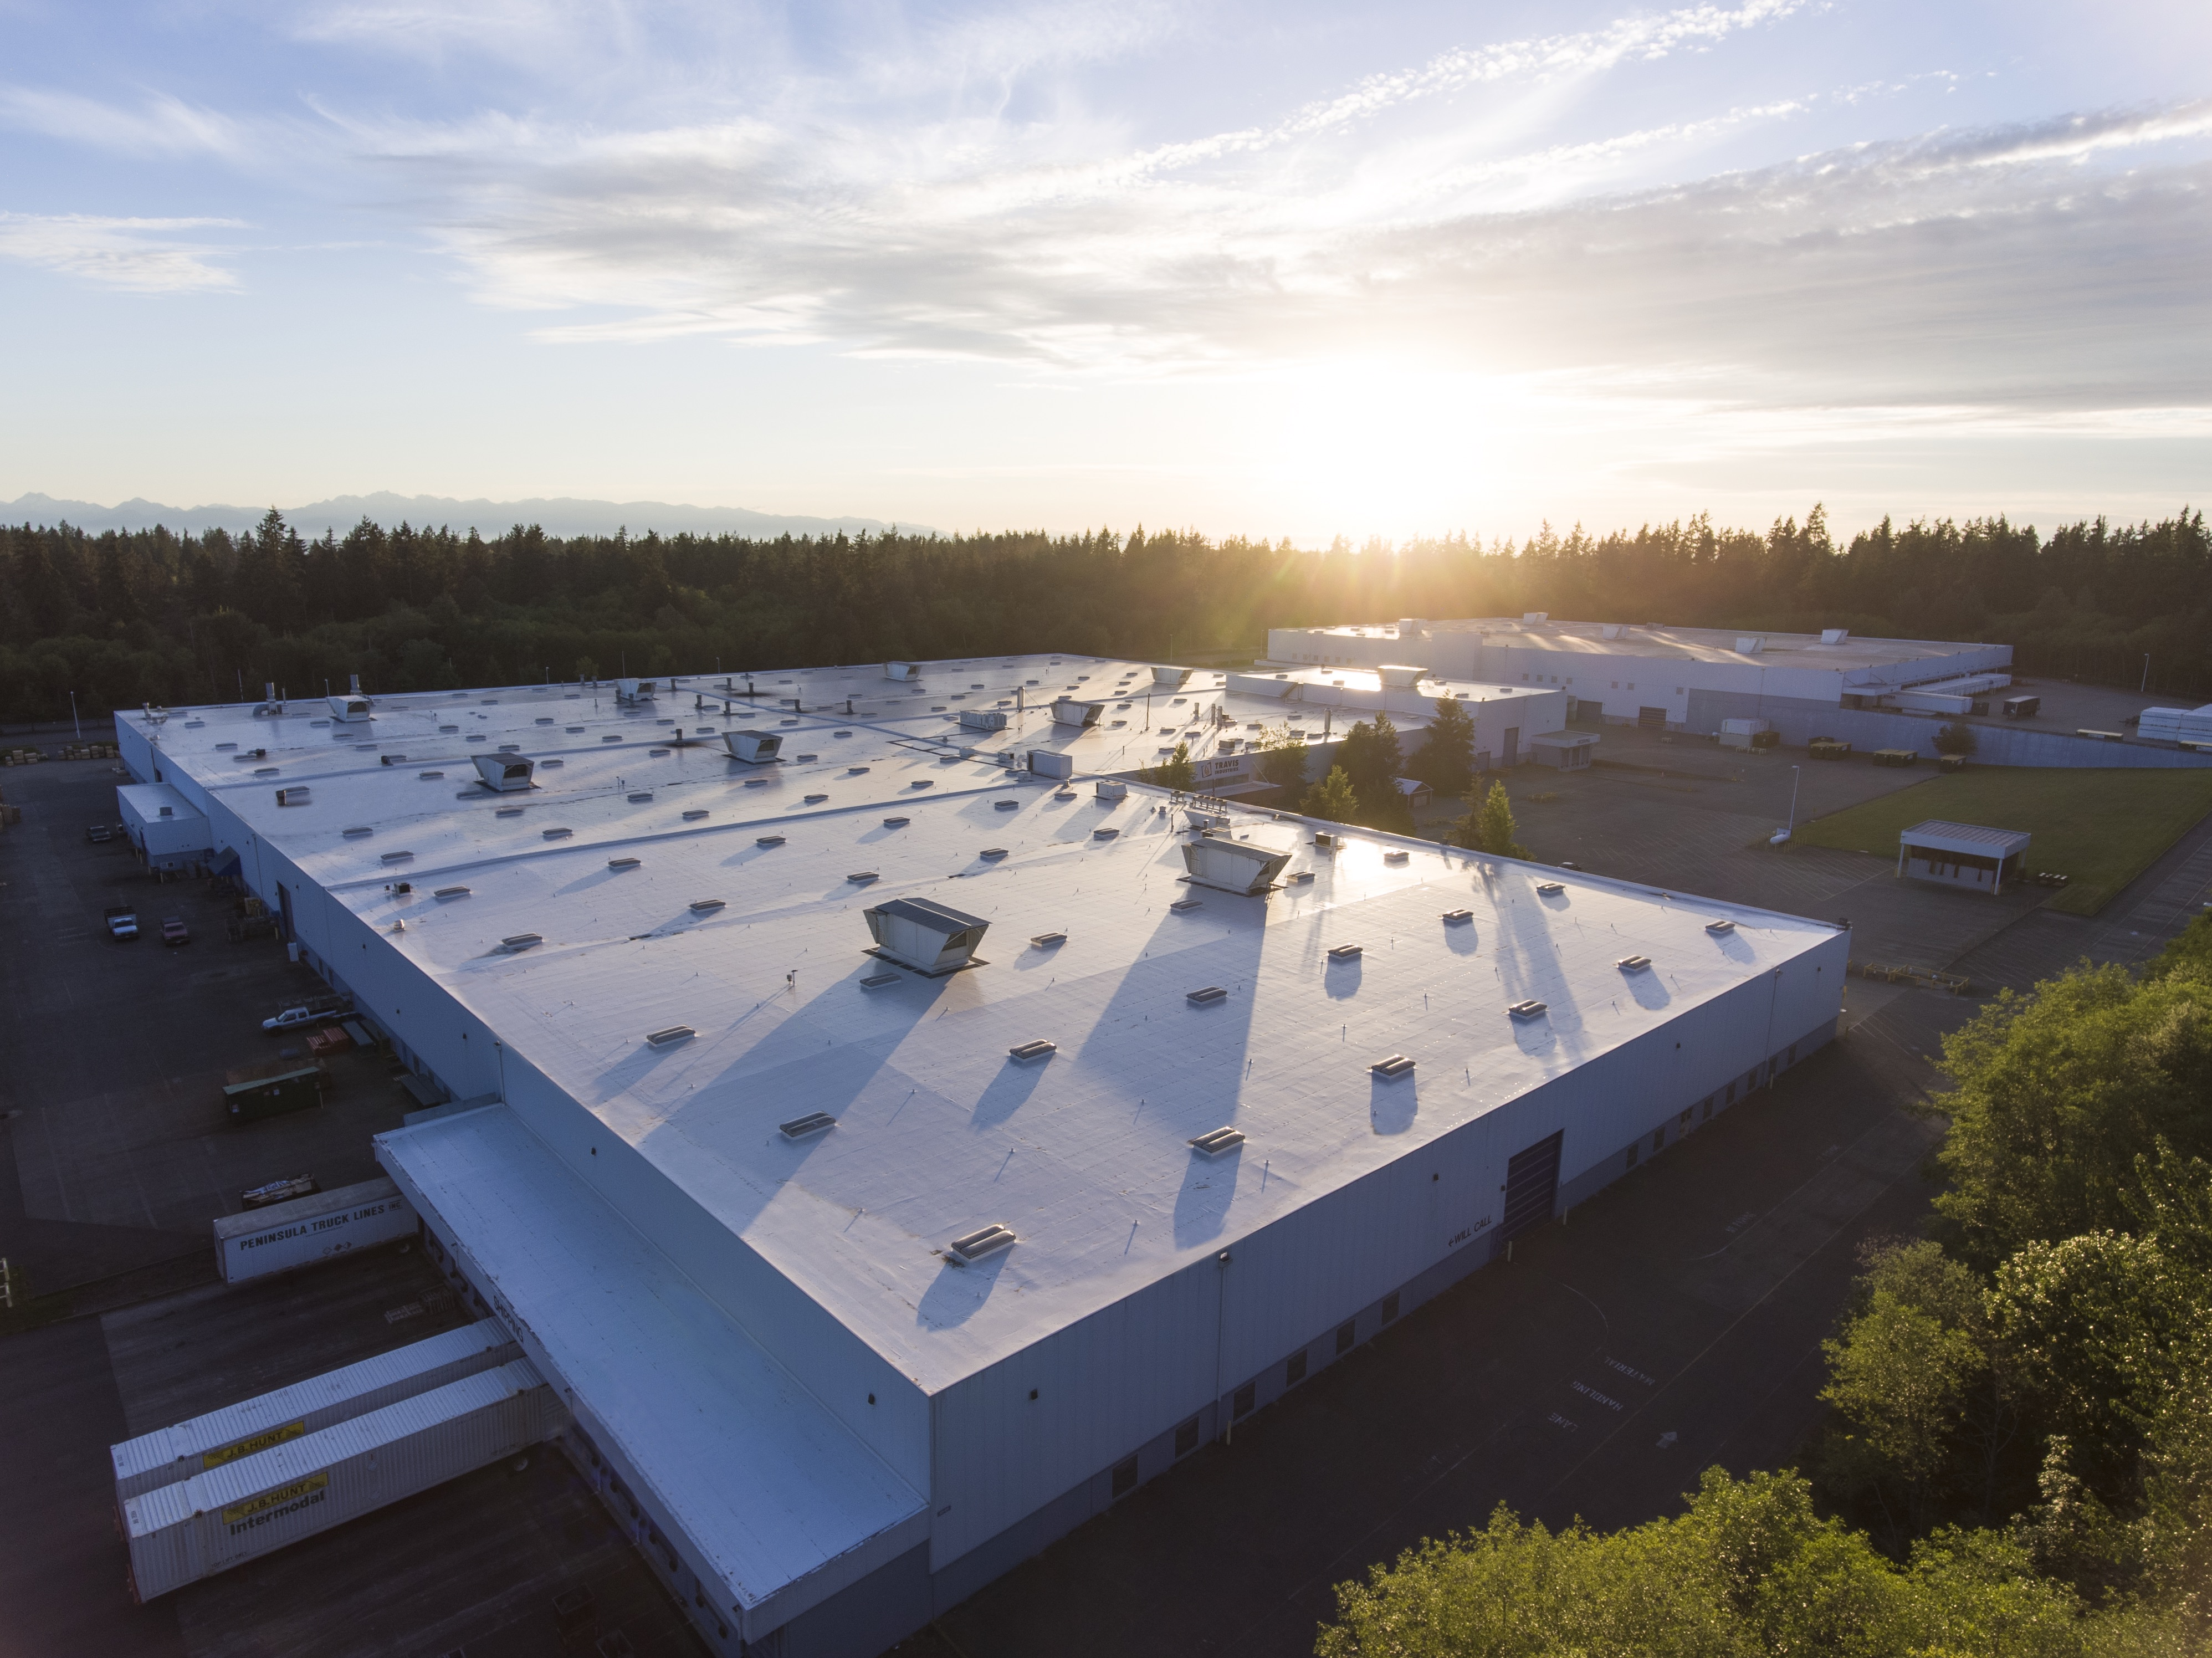 As the planet heats and cities heat even further, cool roofing systems are an effective method to keep buildings cool, protect insulation and substrates, and deflect solar energy back into the atmosphere and beyond.